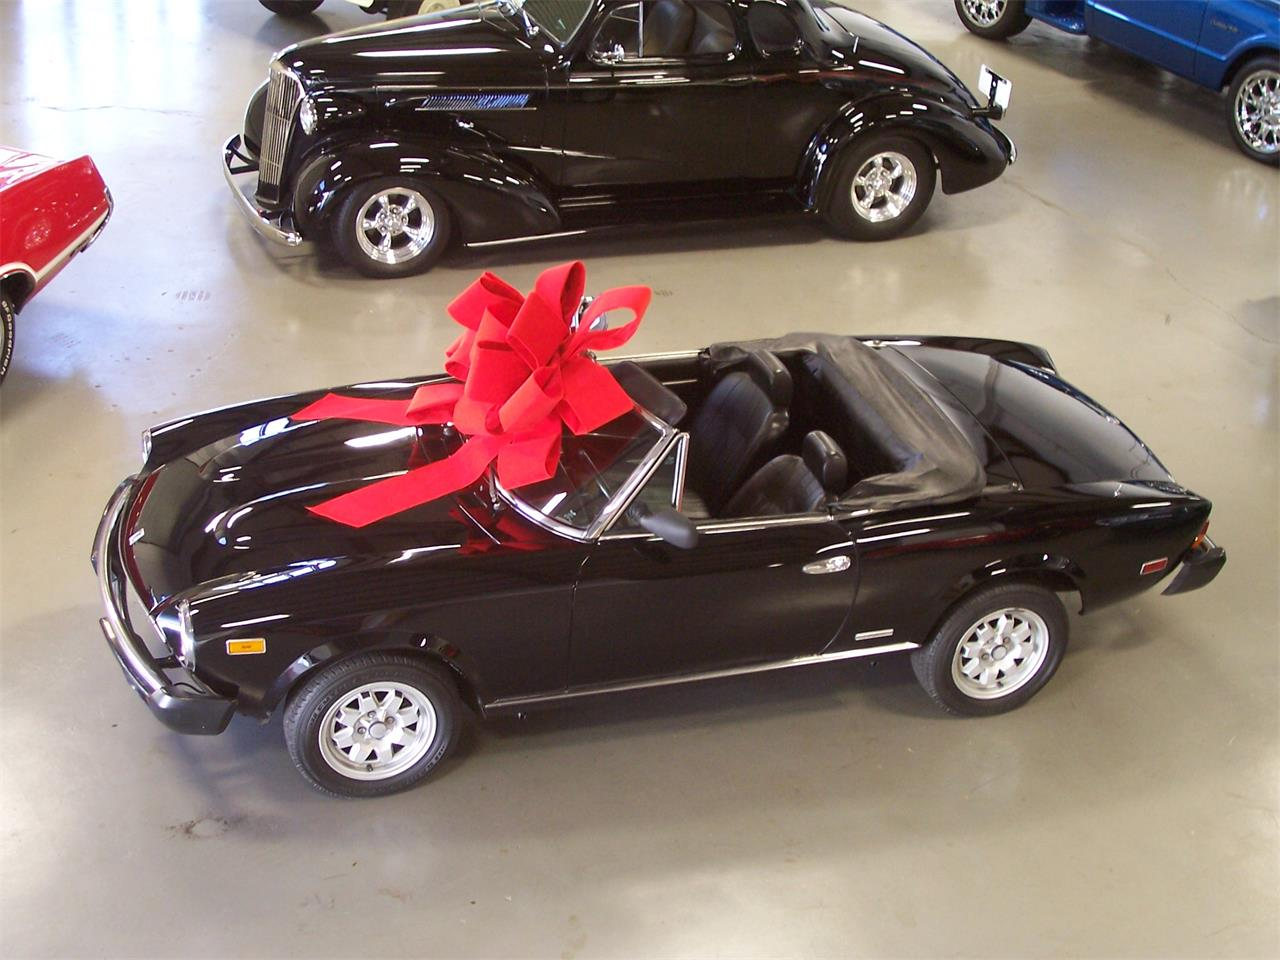 Large Picture of 1985 Fiat Spider located in Georgia - $14,900.00 Offered by Cloud 9 Classics - MH5P